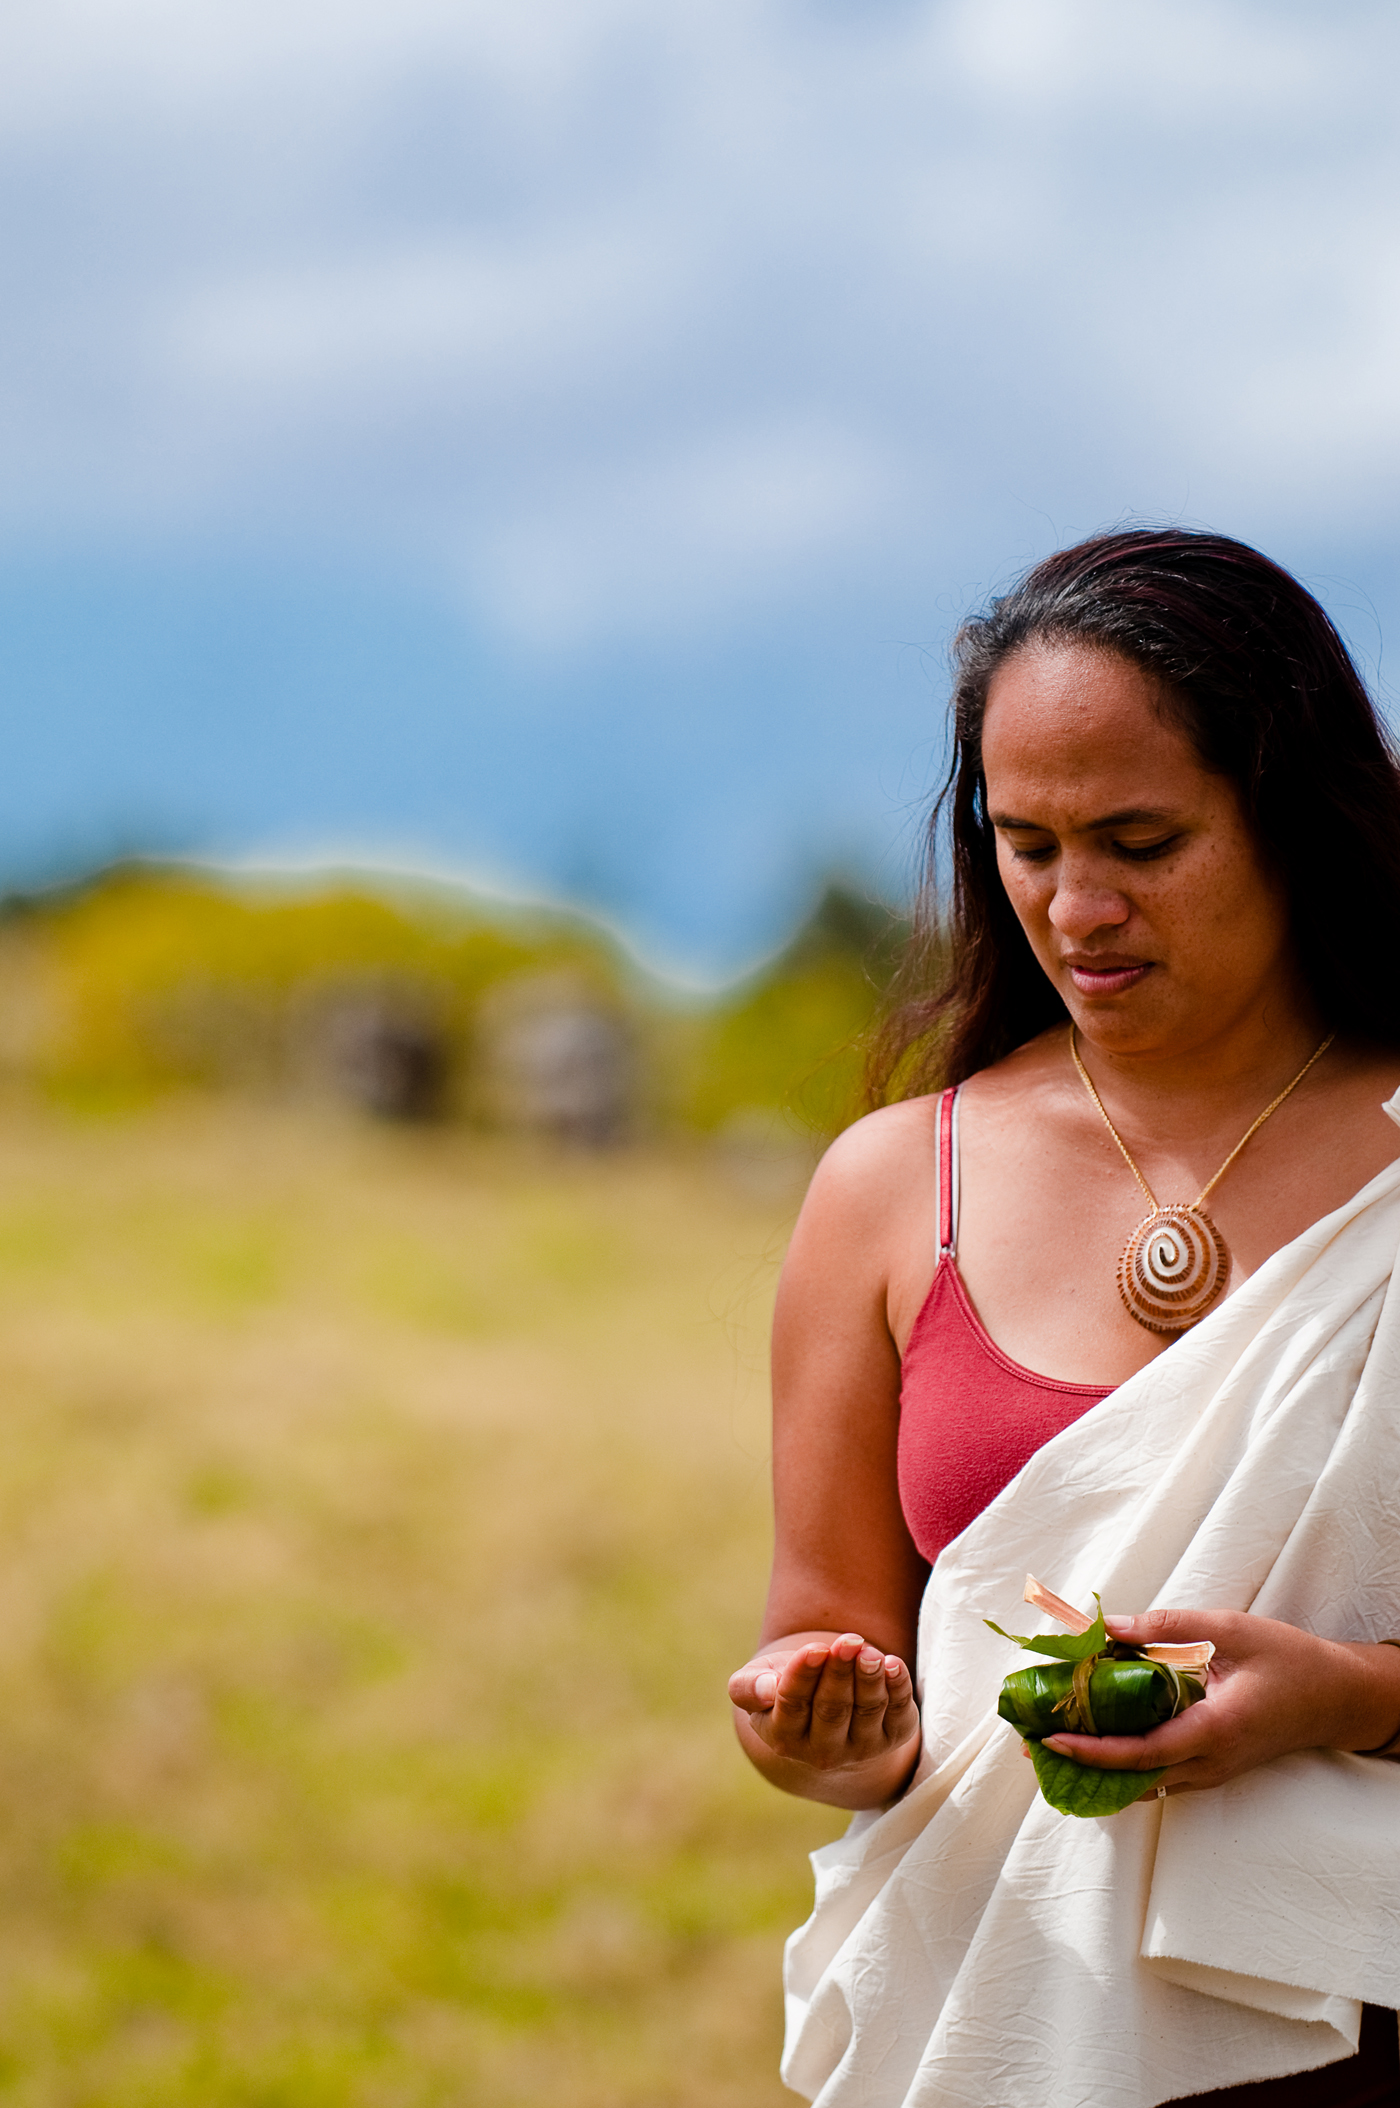 [Woman with hoʻokupu] Photo by Ruben Carillo.